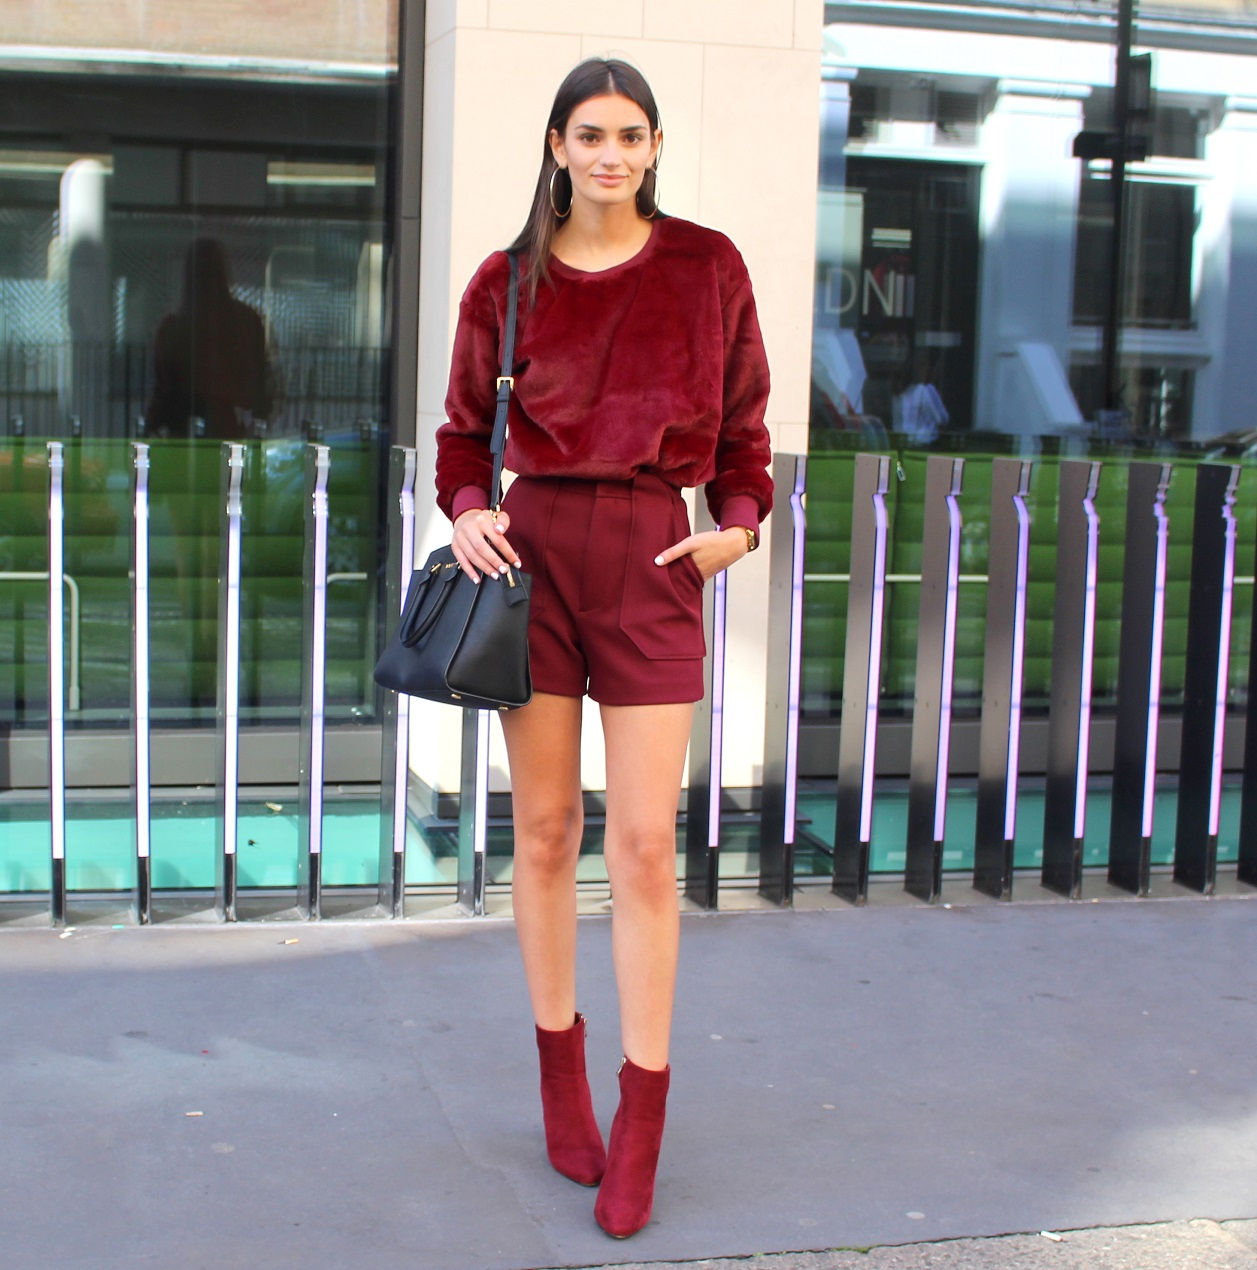 peexo fashion blogger wearing burgundy ss16 lfw